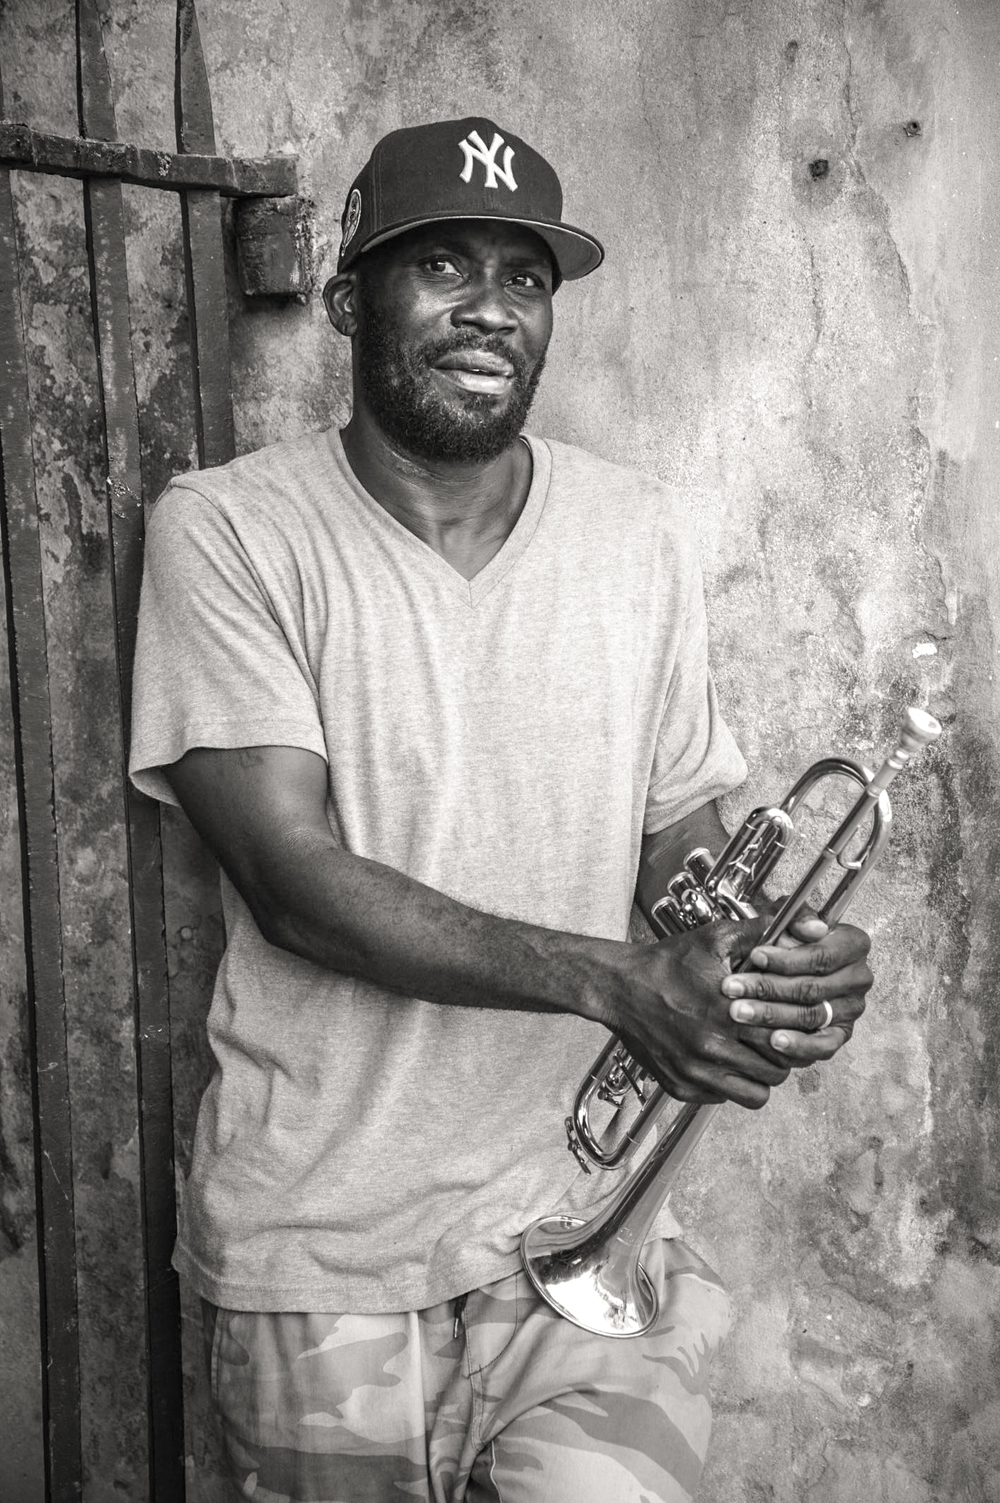 "Glen Andrews - Trumpeter |  New Orleans, LA -  I stood in jackson square and I watched him play for a good 10 to 15 minutes and I just knew I had to shoot his portrait. Photography allows and encourages passionate people watching (at least that's what I tell myself). When he reached a break, I approached him, ""Hey man, I'm a photographer would it be cool to take a photo of you?"" ""Yeah, sure."" he replied. I saw a spot underneath an overhang  with a weathered wall and rusting iron gate making the perfect corner. It had to be in black and white. ""I don't know, maybe bring your trumpet up somehow. Rest it."""